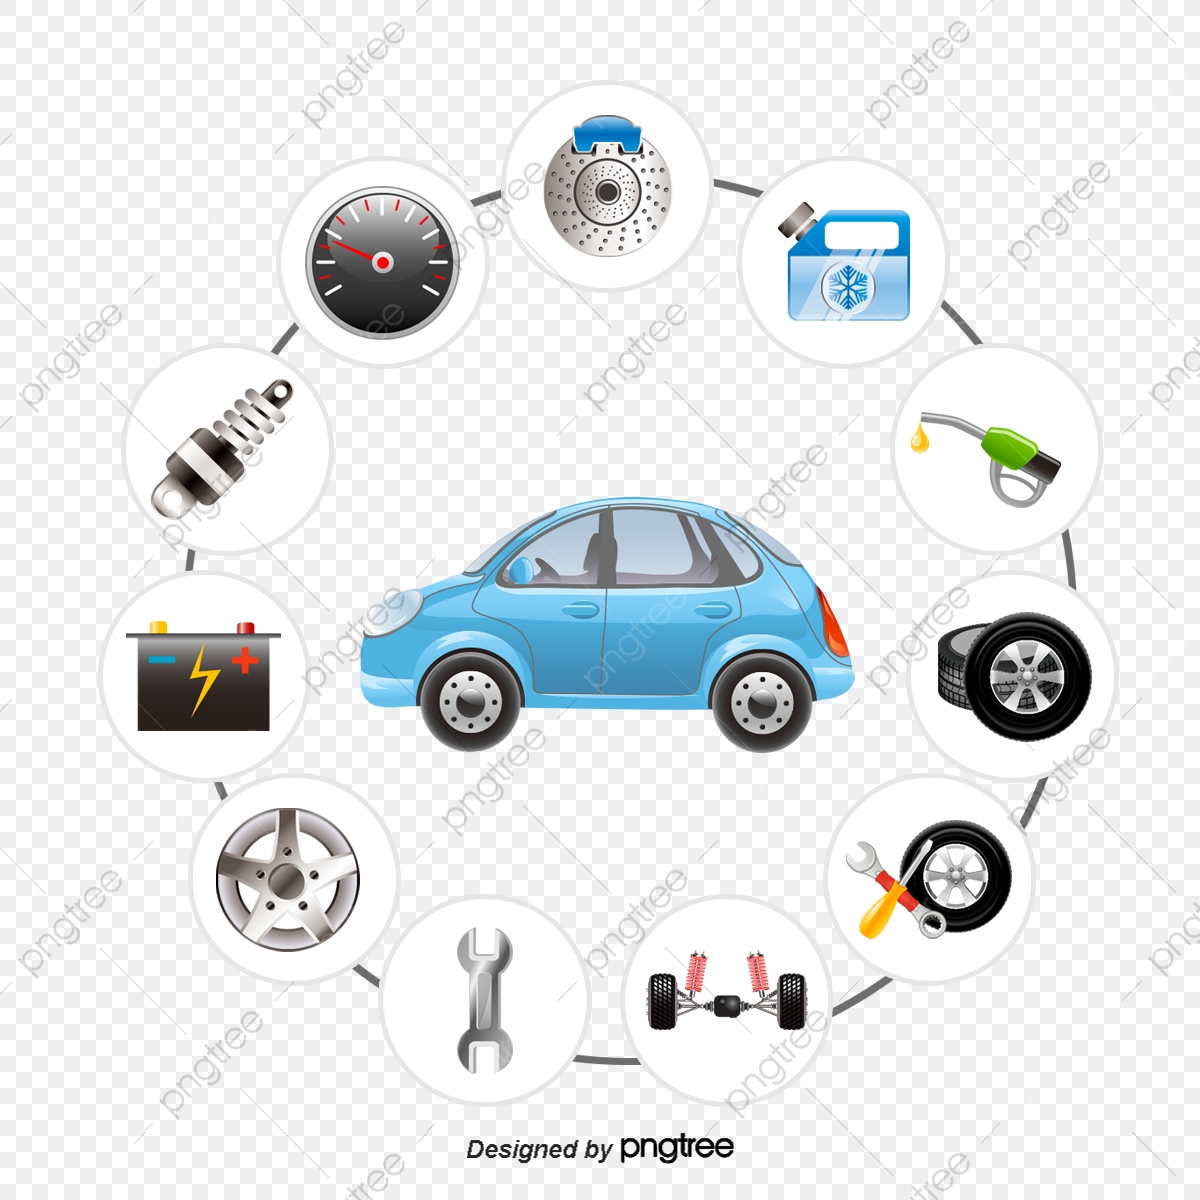 301 Auto Parts >> Vector Cars And Auto Parts Vector Diagram Car Car Parts